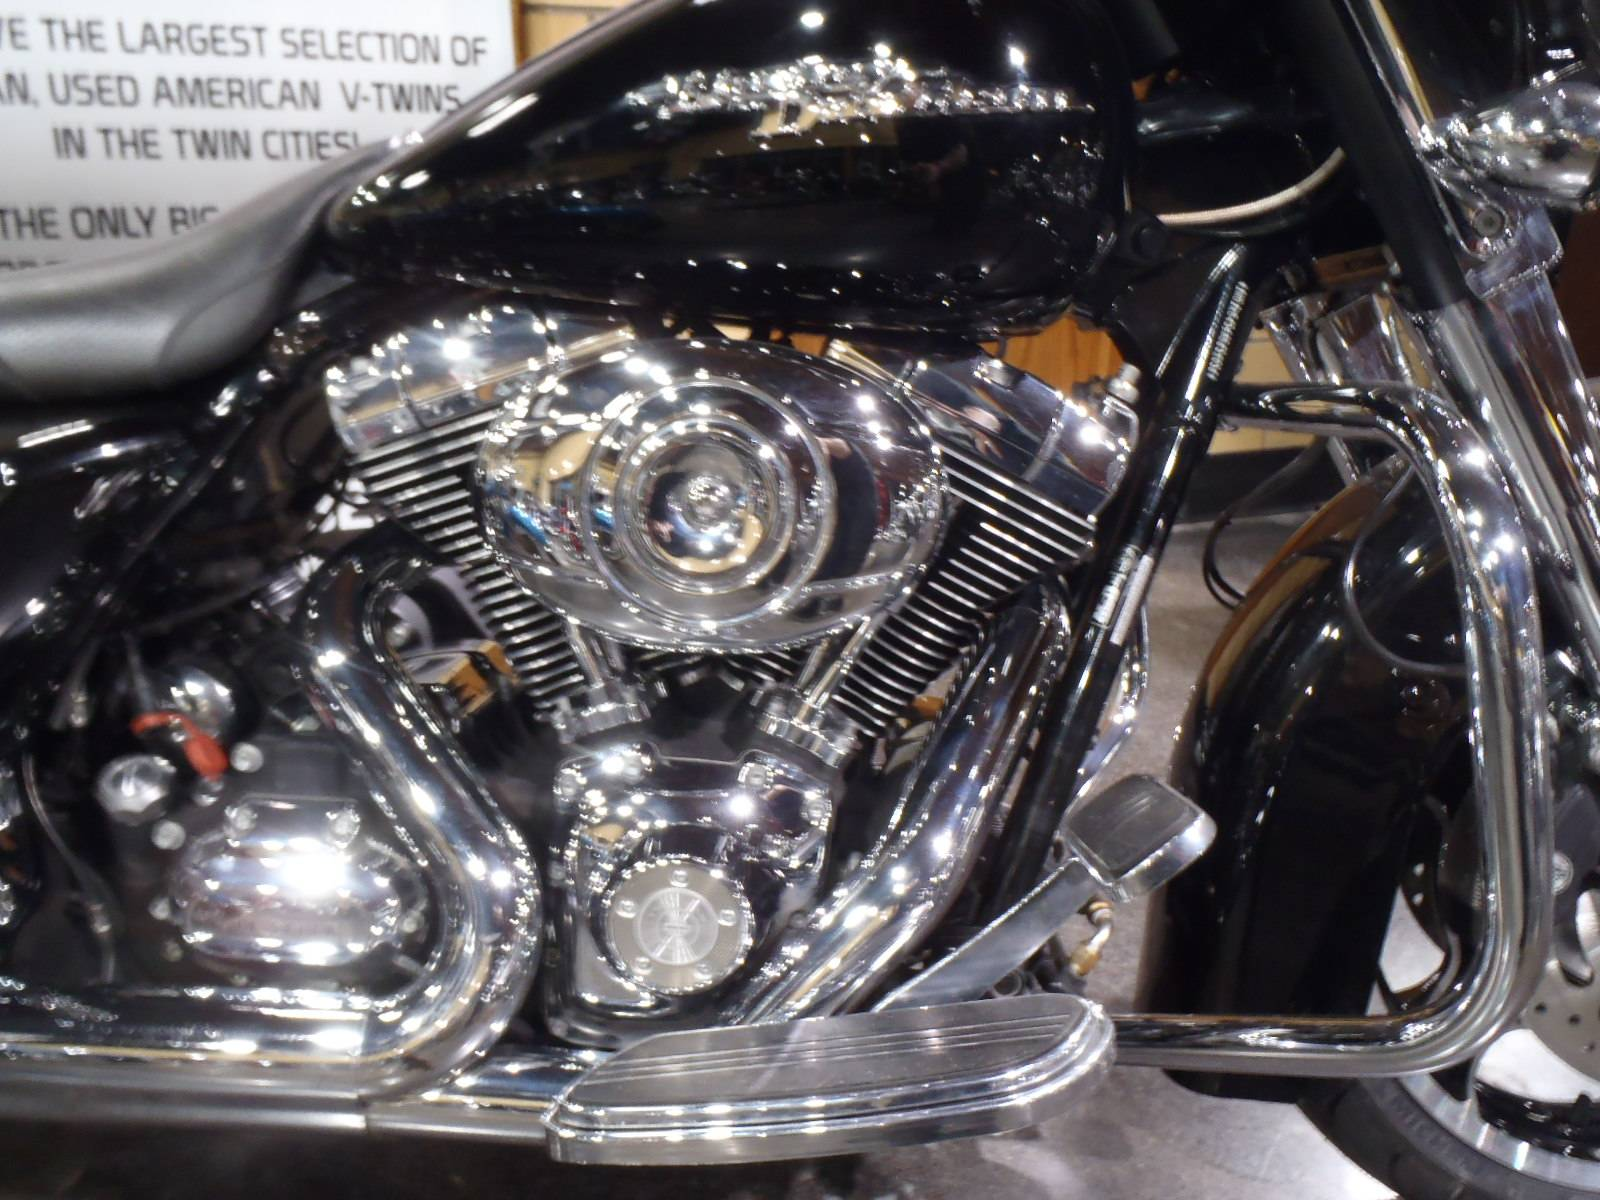 2010 Harley-Davidson Street Glide® in South Saint Paul, Minnesota - Photo 6